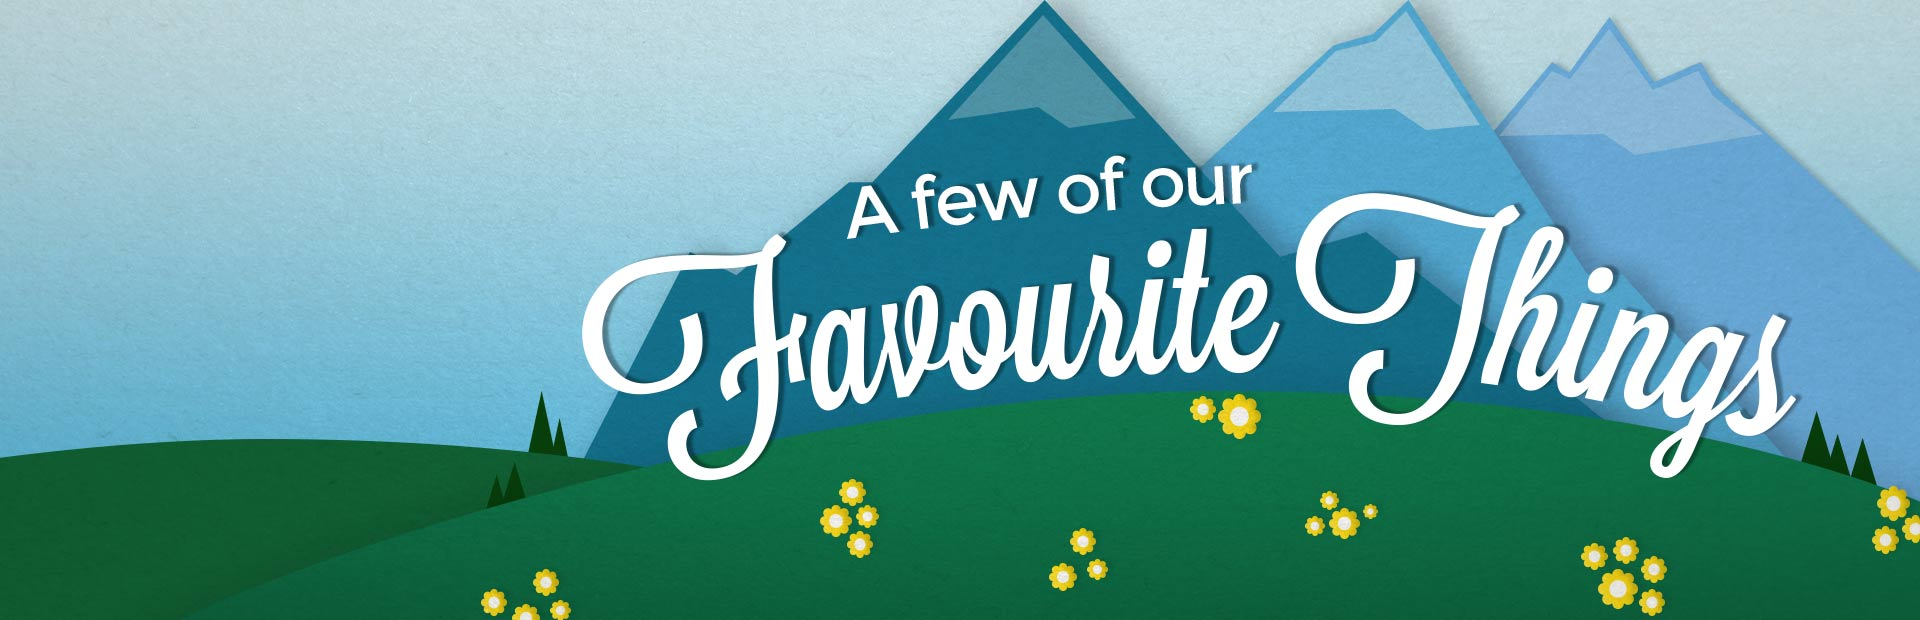 Dc Presents: Our May Faves, Curated Just for You